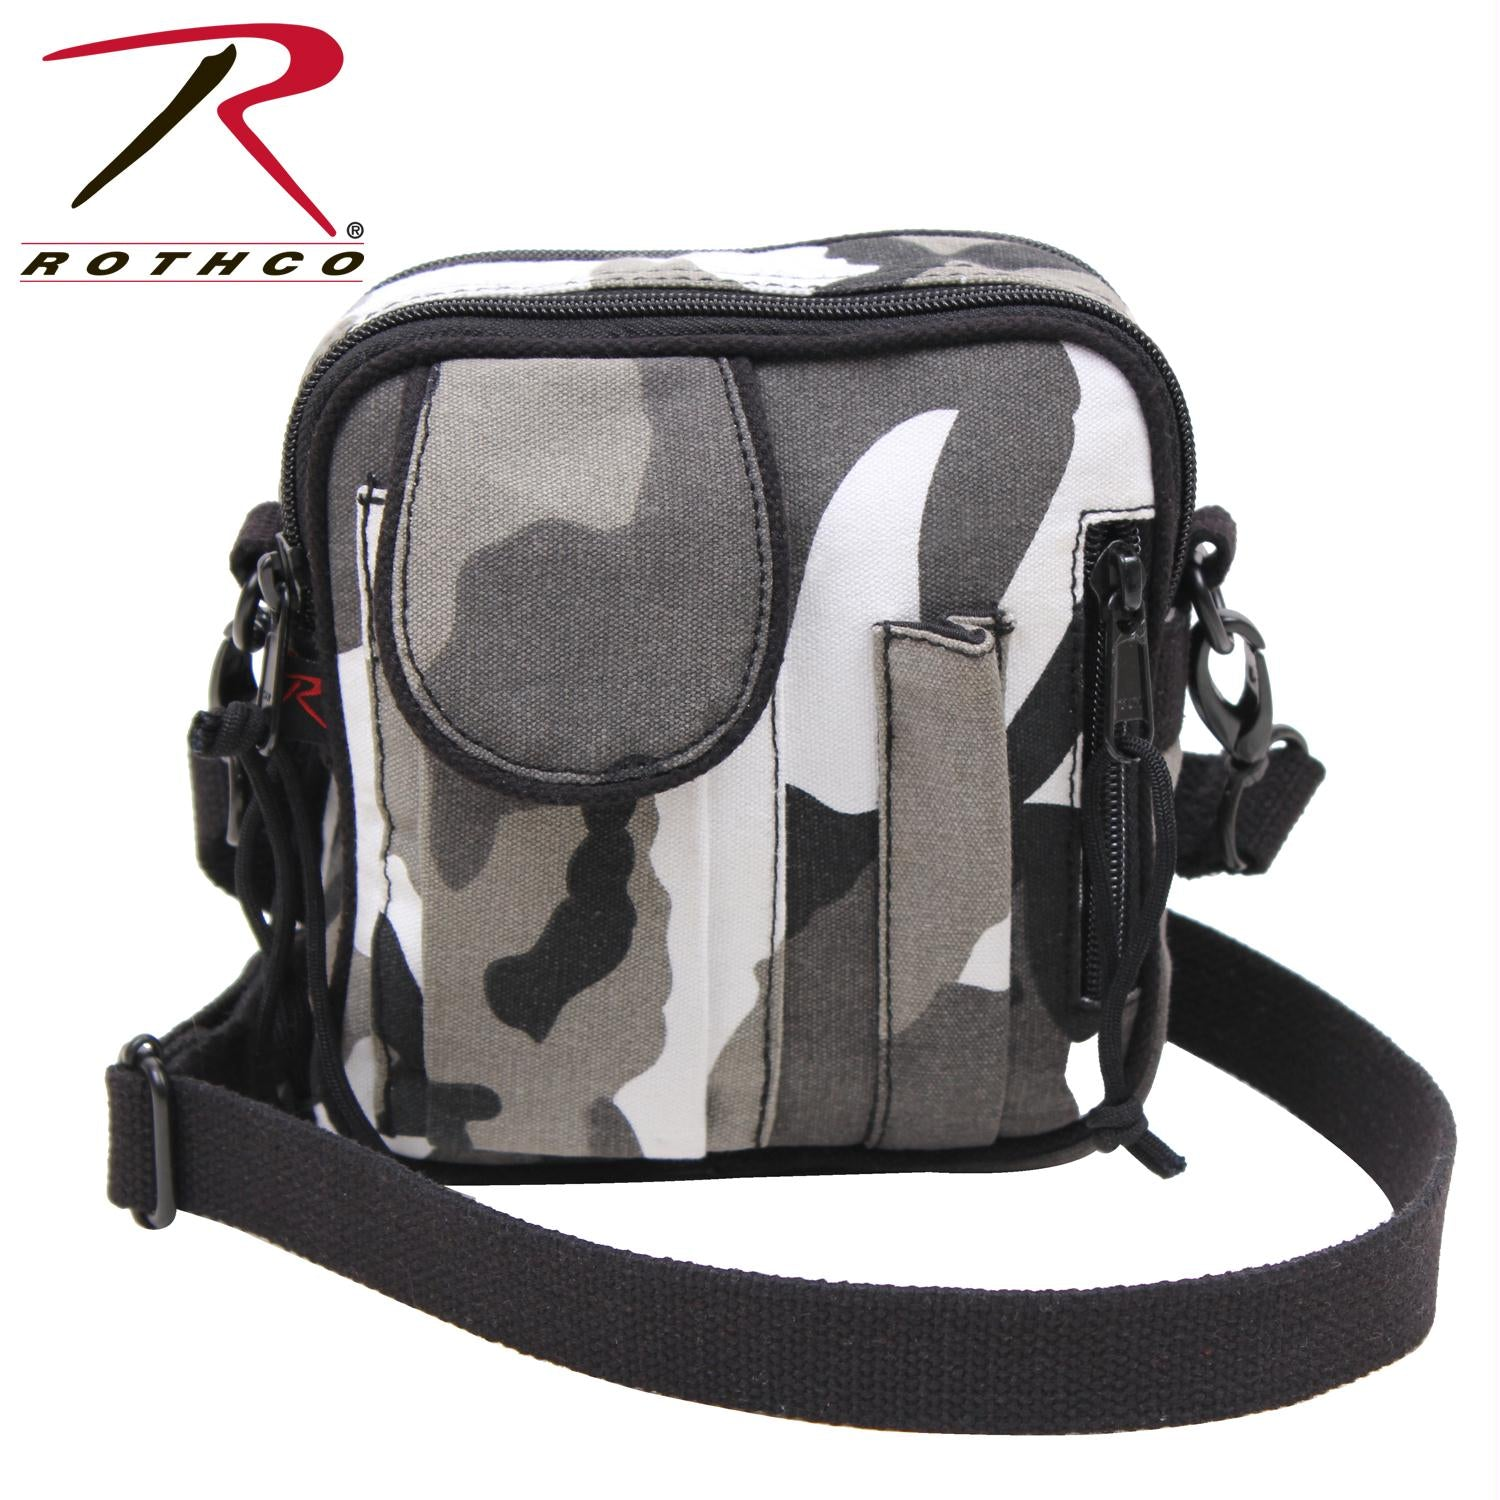 Rothco Excursion Organizer Shoulder Bag